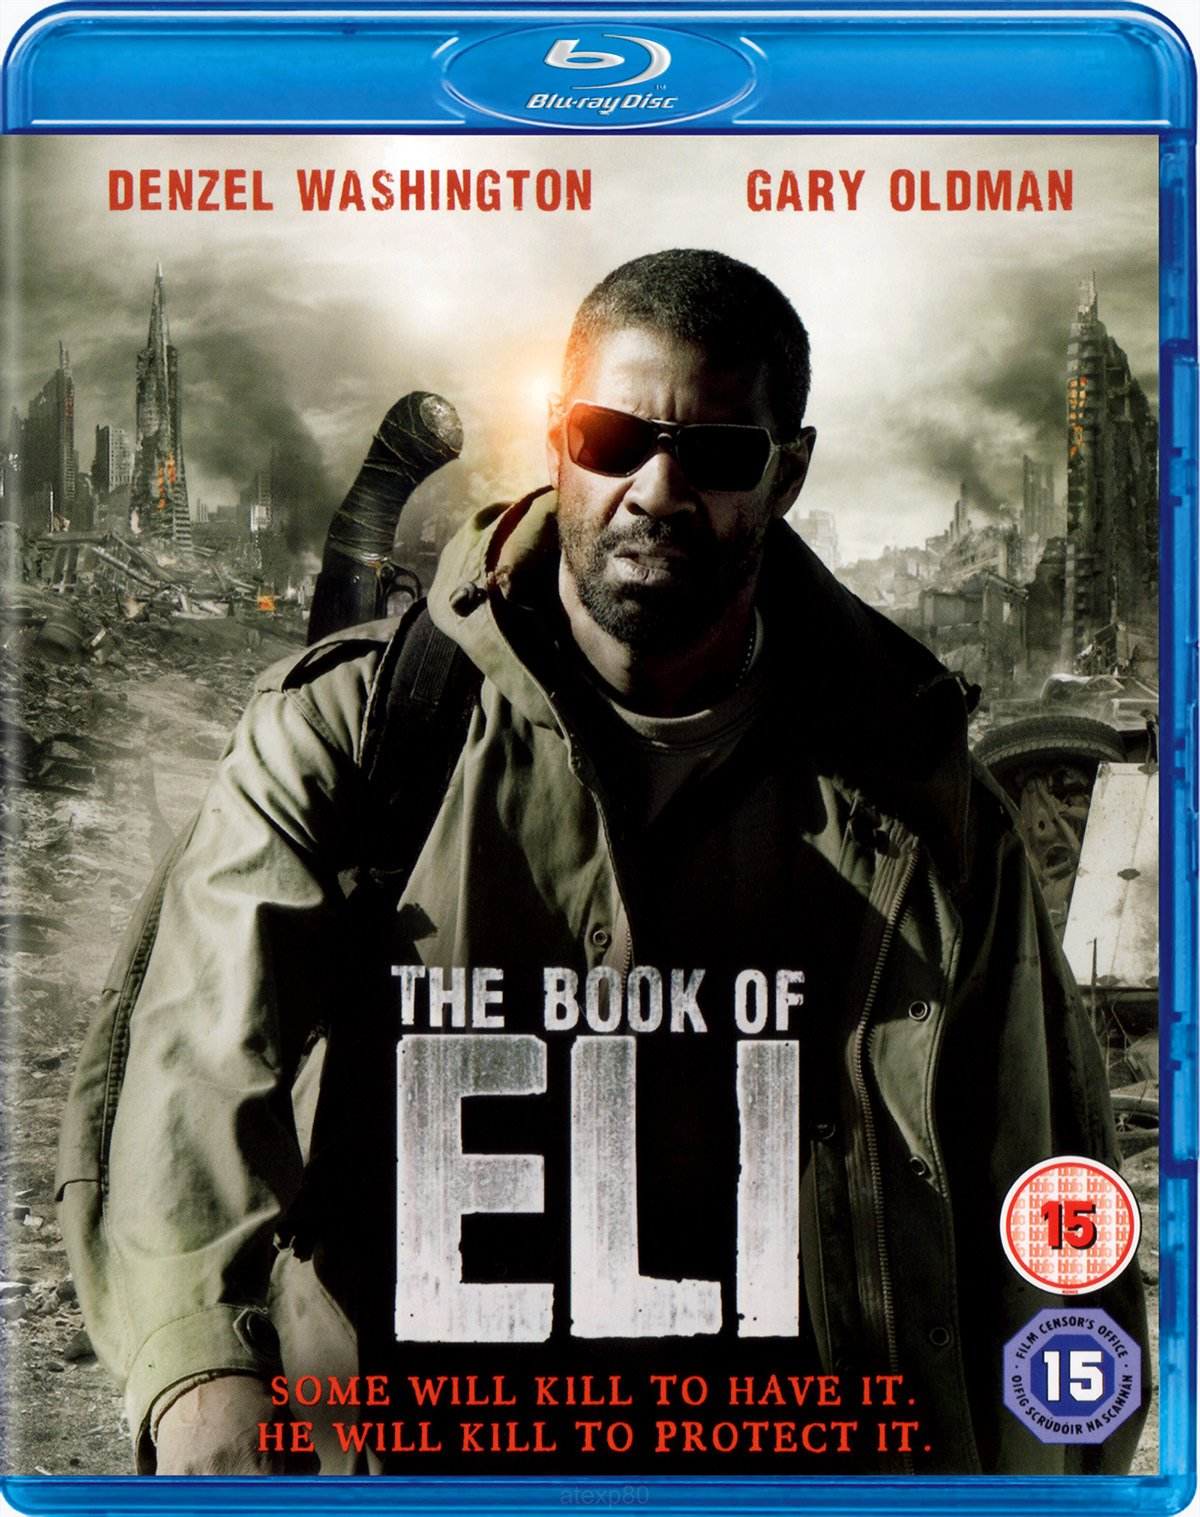 download the book of eli 2010 bluray 1080p dd5.1 h265-d3g - softarchive